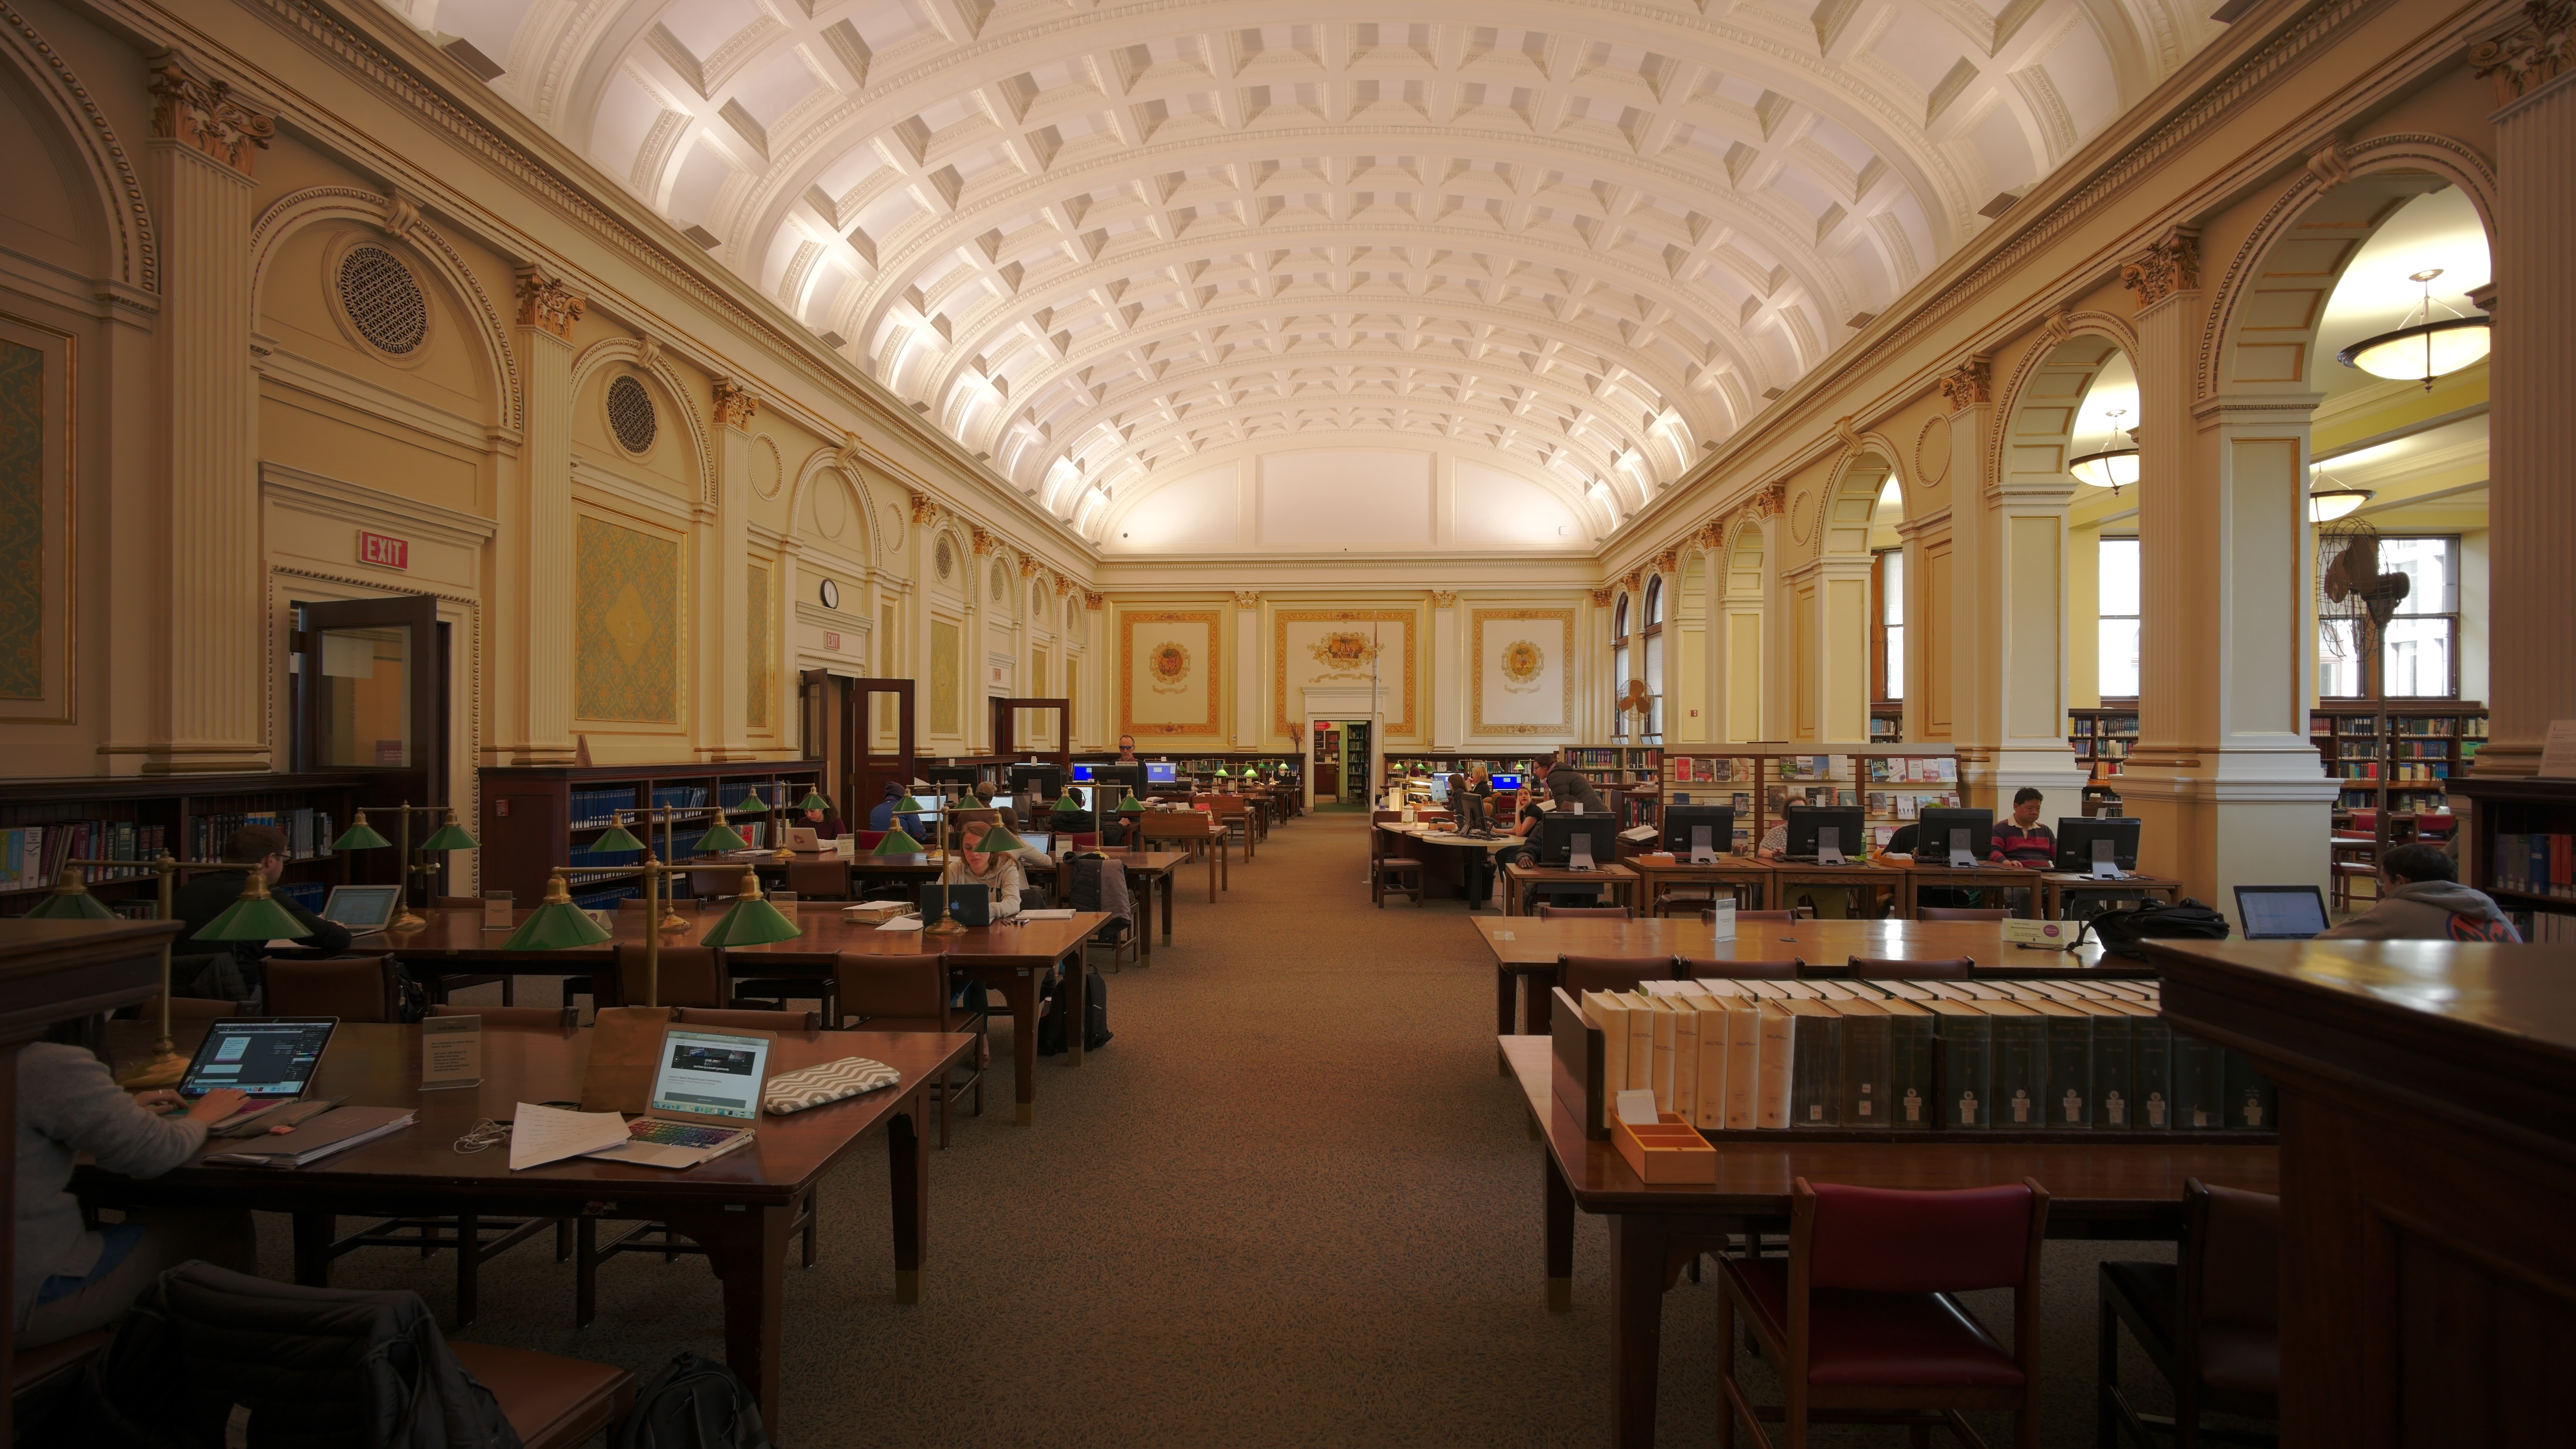 Carnegie Library of Pittsburgh - Wikipedia